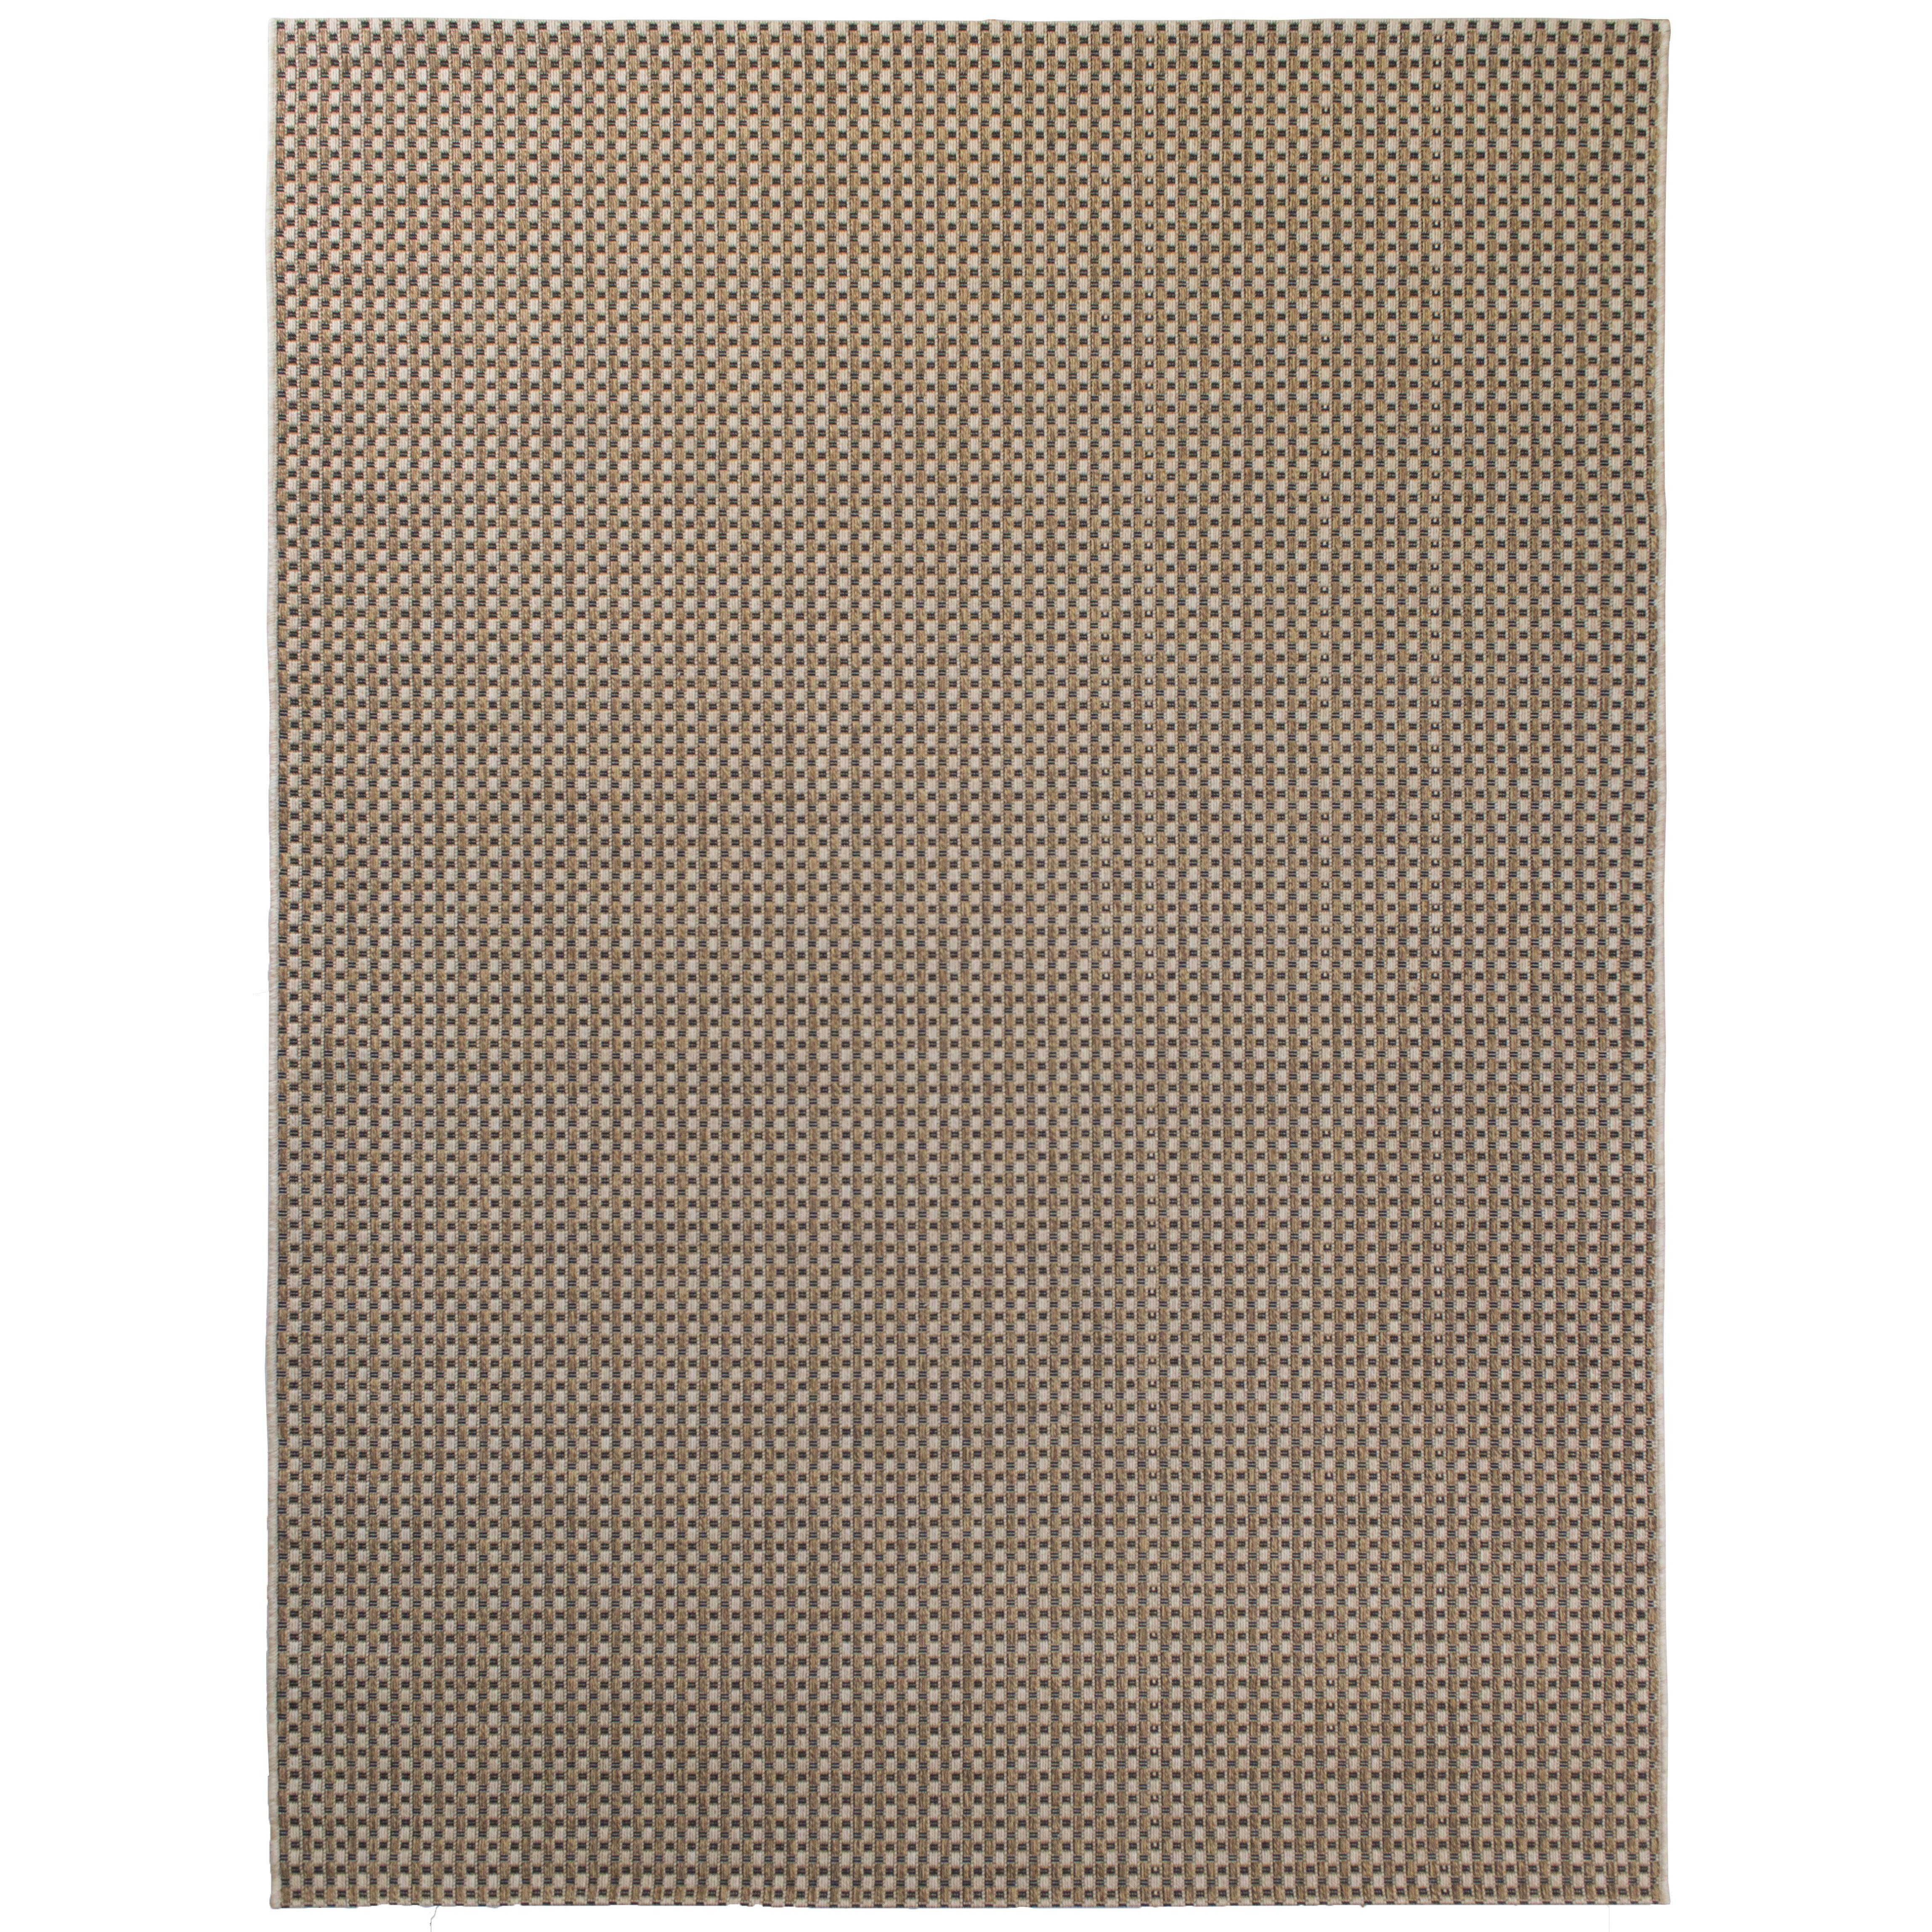 Balta Beige Brown Indoor Outdoor Area Rug